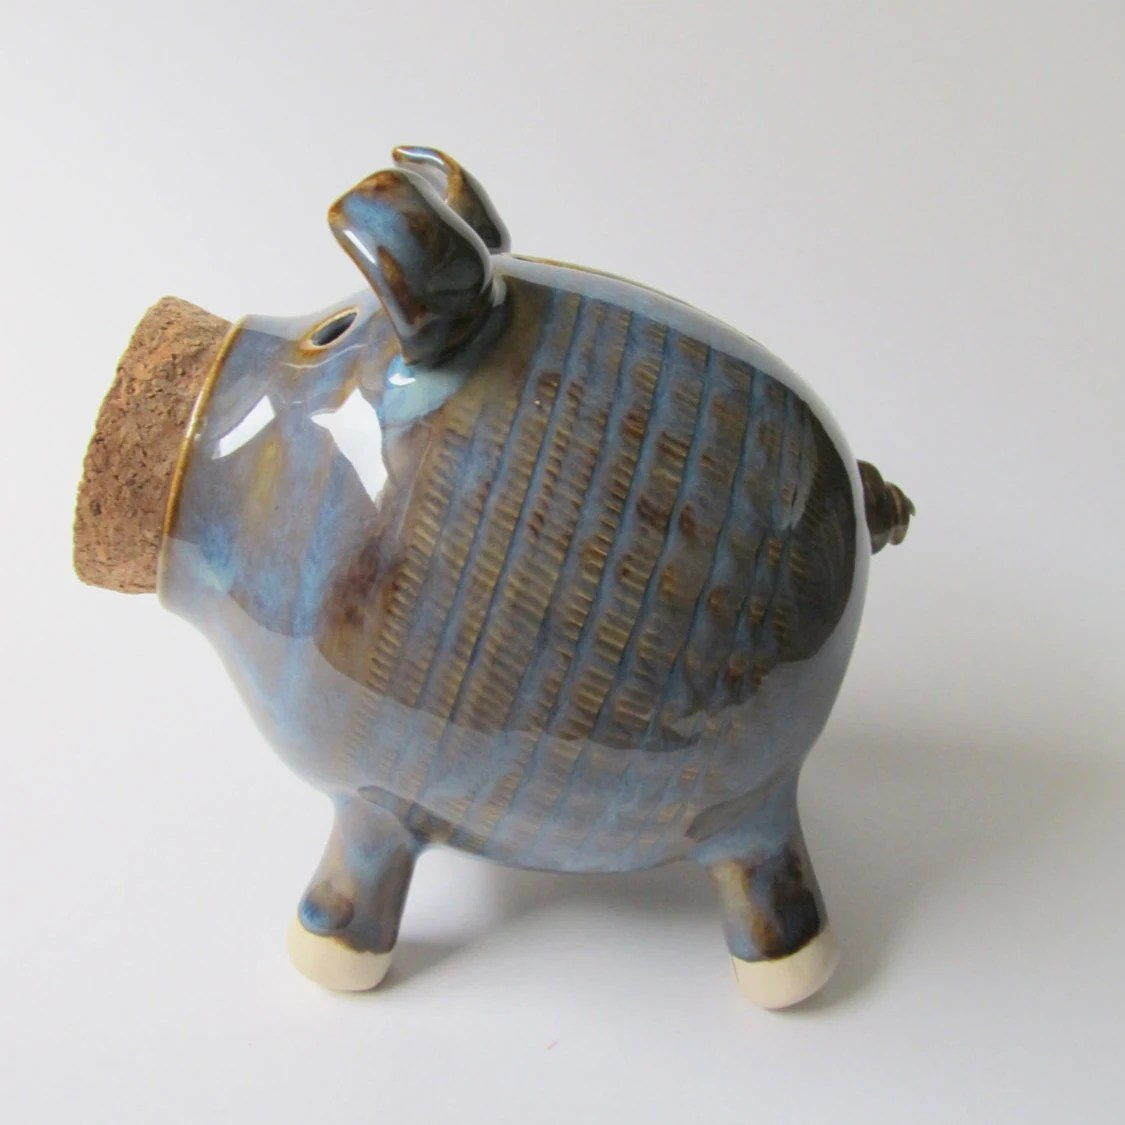 Cheap Piggy Banks For Sale Seconds Sale Ceramic Piggy Bank Handmade Piggy Bank Blue